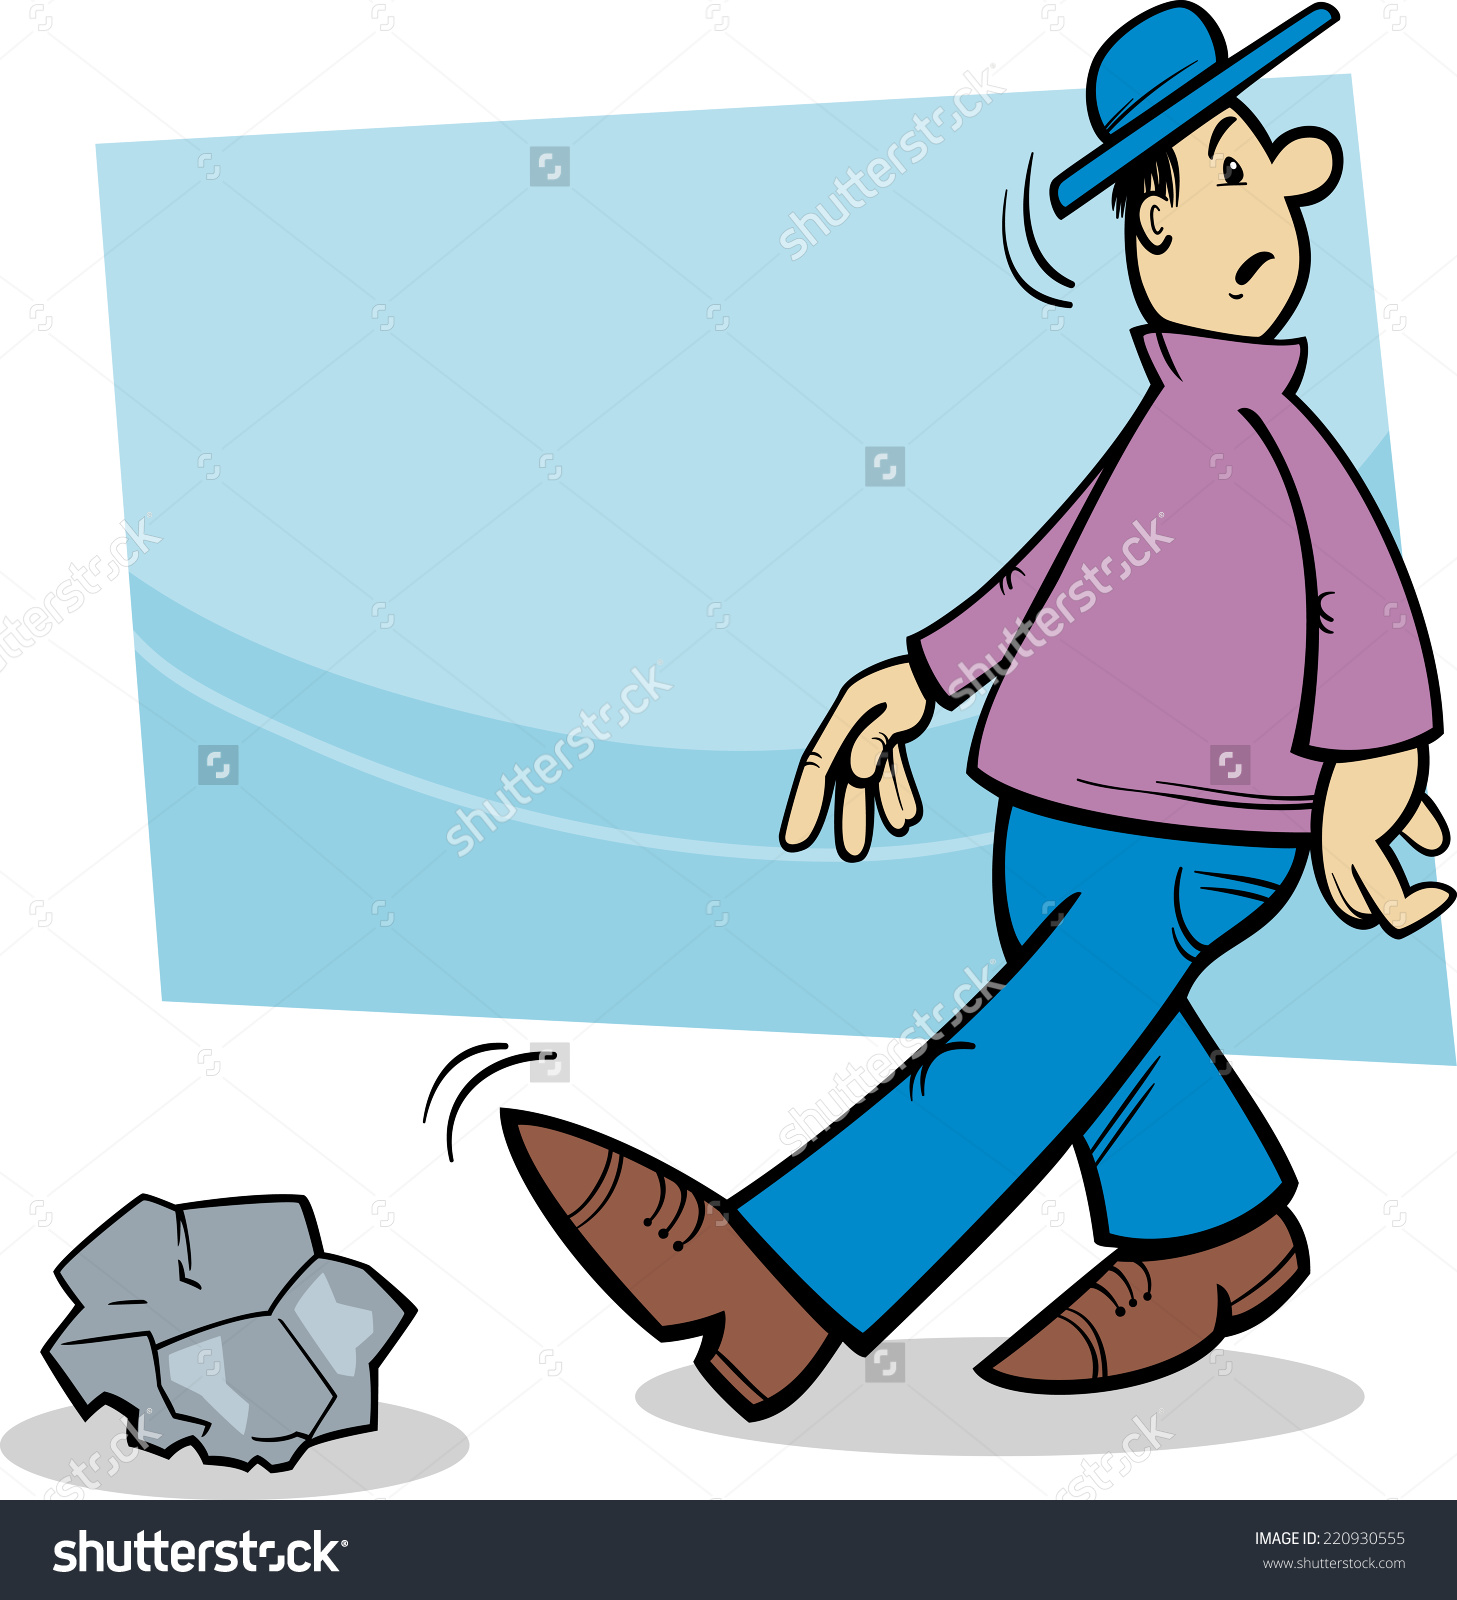 Cartoon Illustration Of Funny Inattentive Man Going To Stumble On.